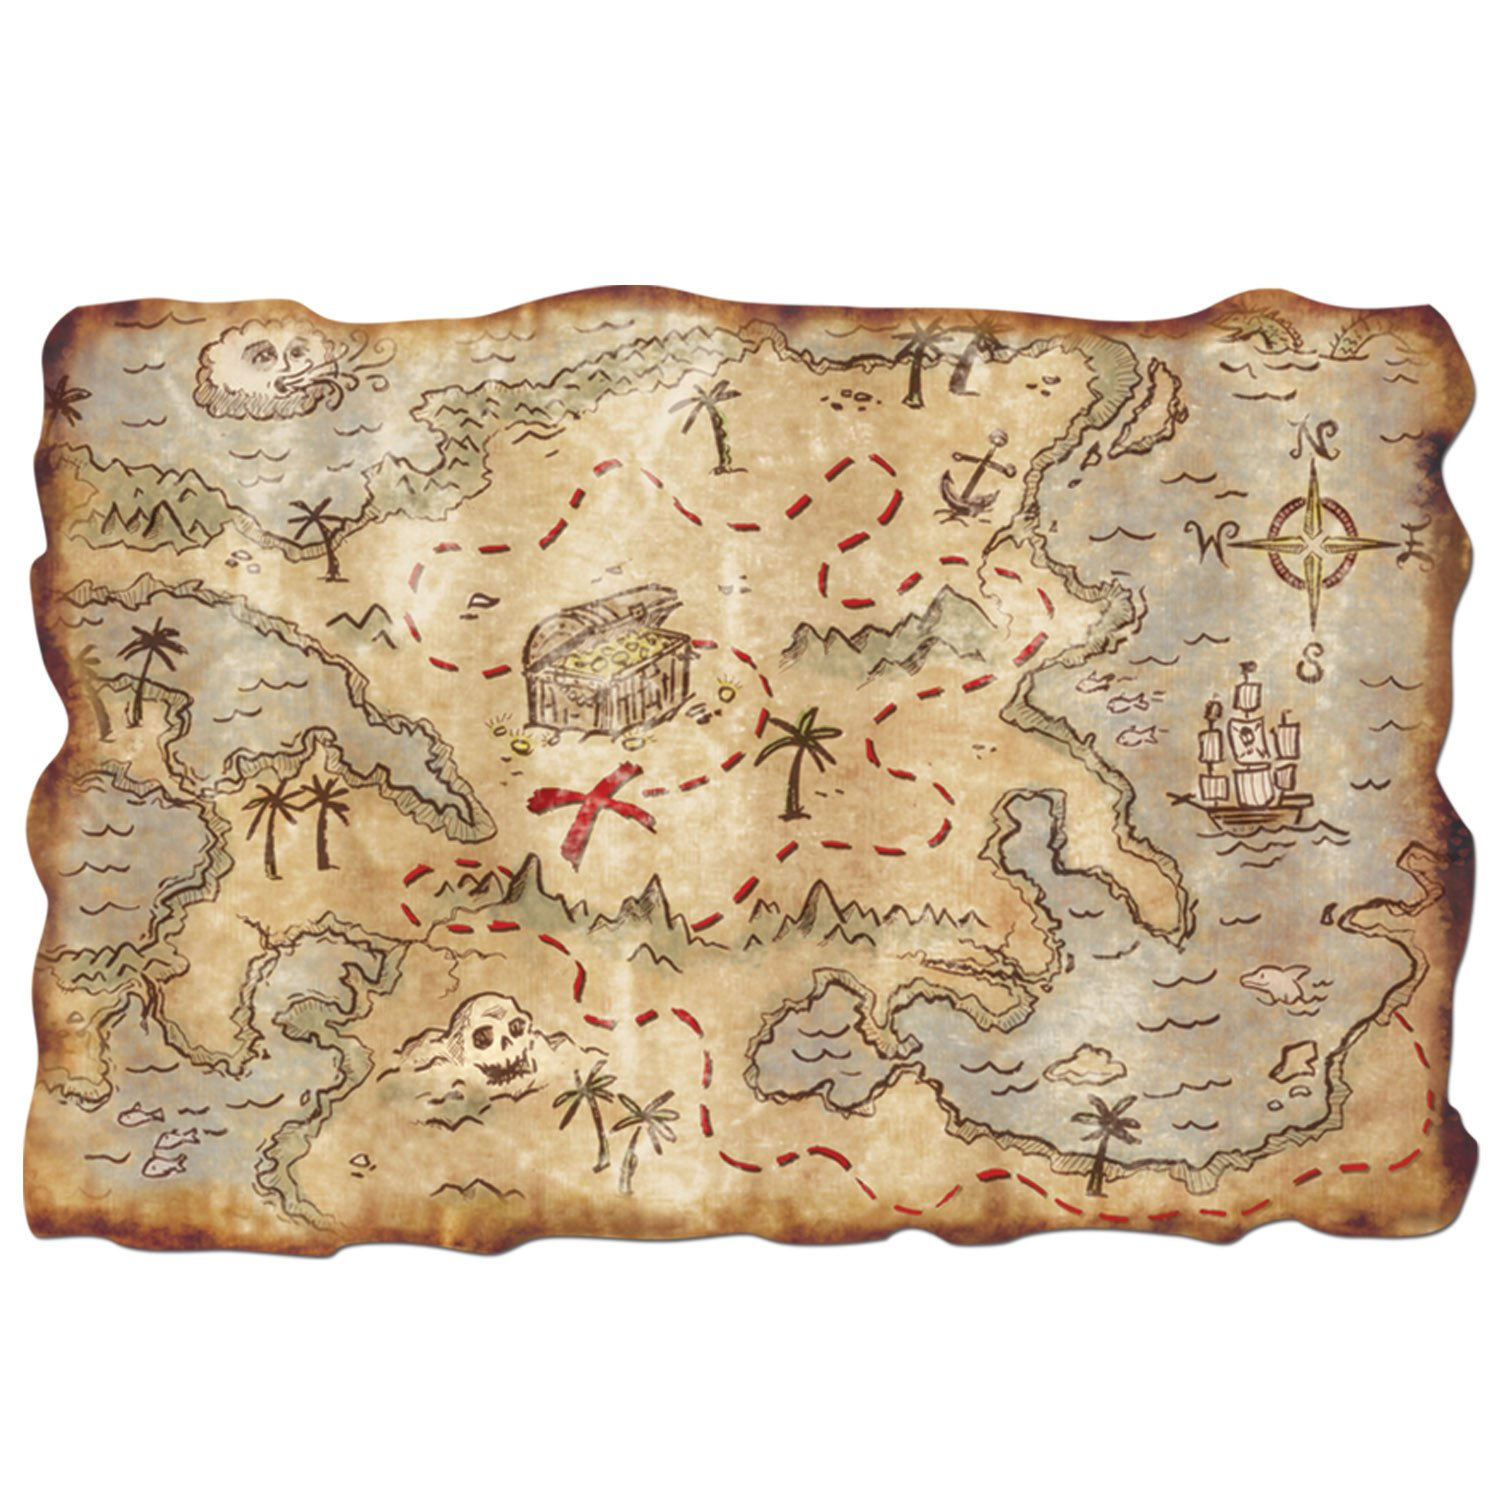 treasure map for kids